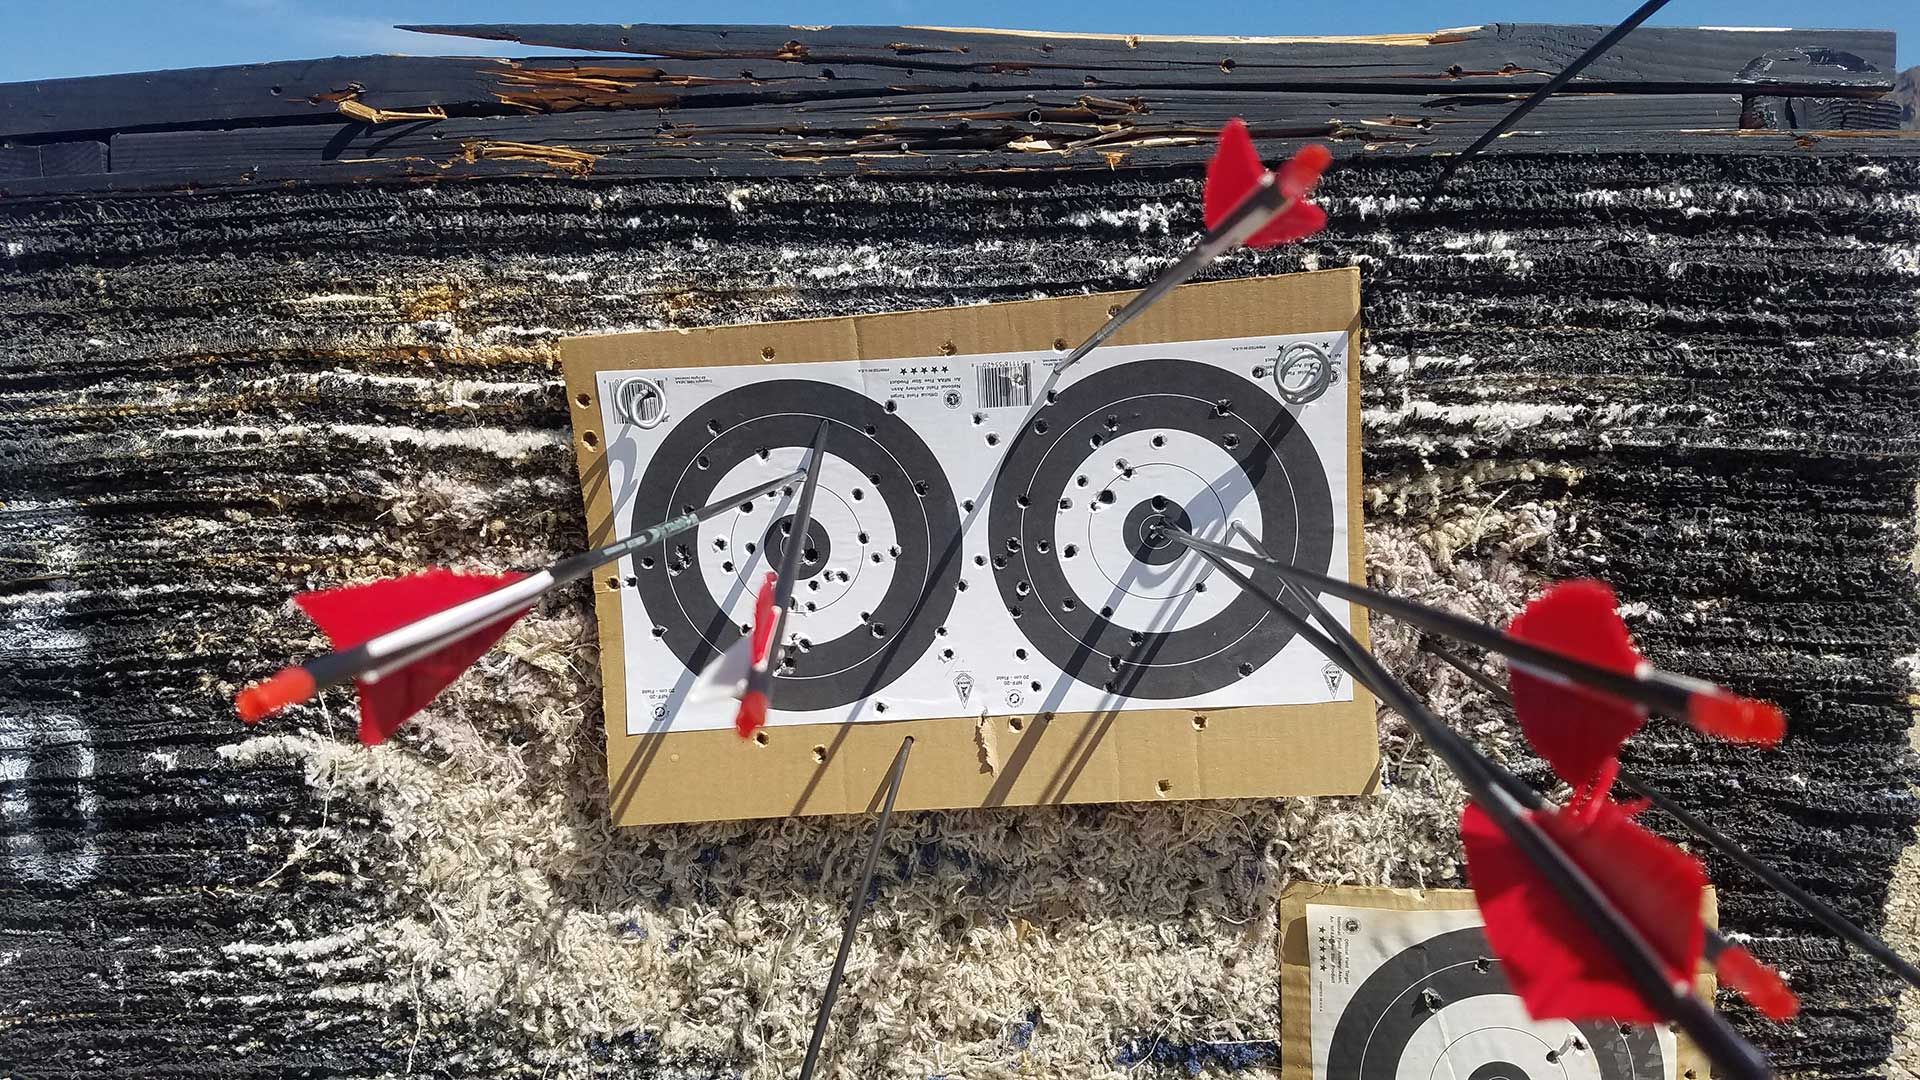 Arrows in an archery target at a range near Tucson.